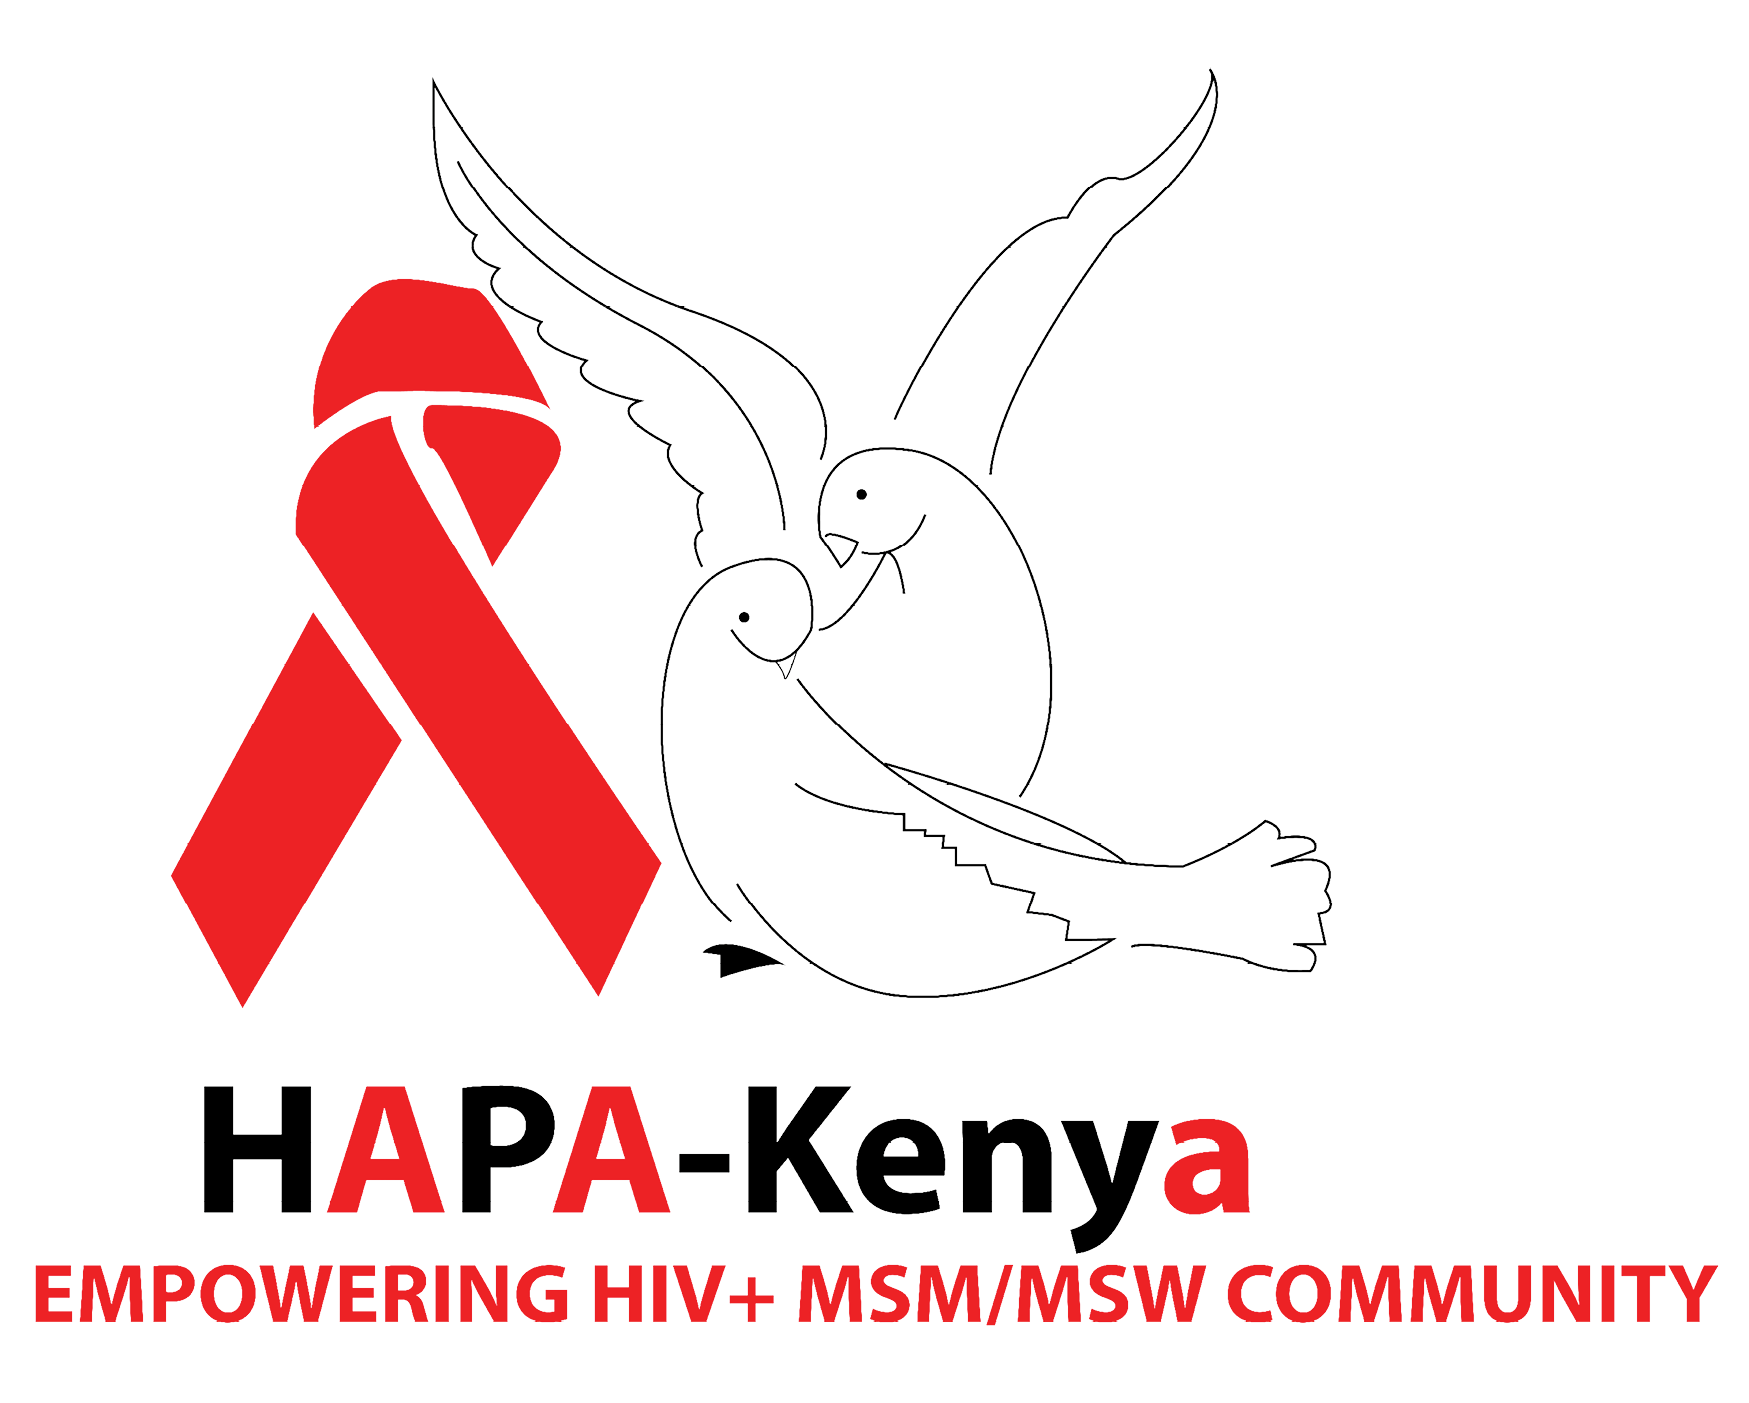 HAPA Kenya Vacancy Announcement